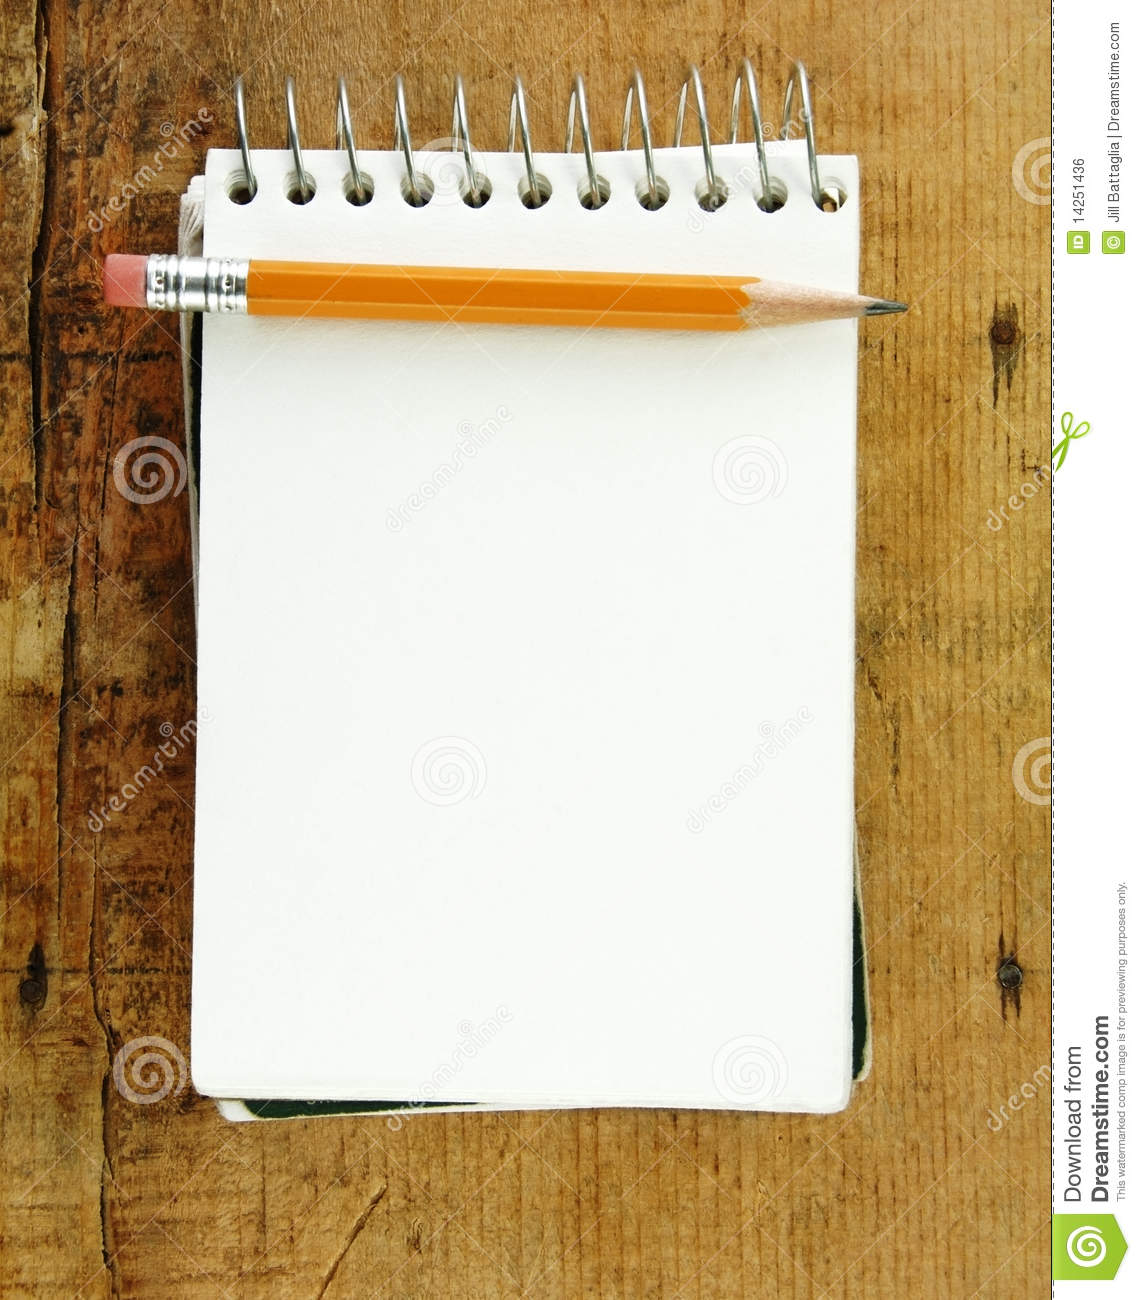 Pencil On Small Pad Of Paper Royalty Free Stock Image - Image ...